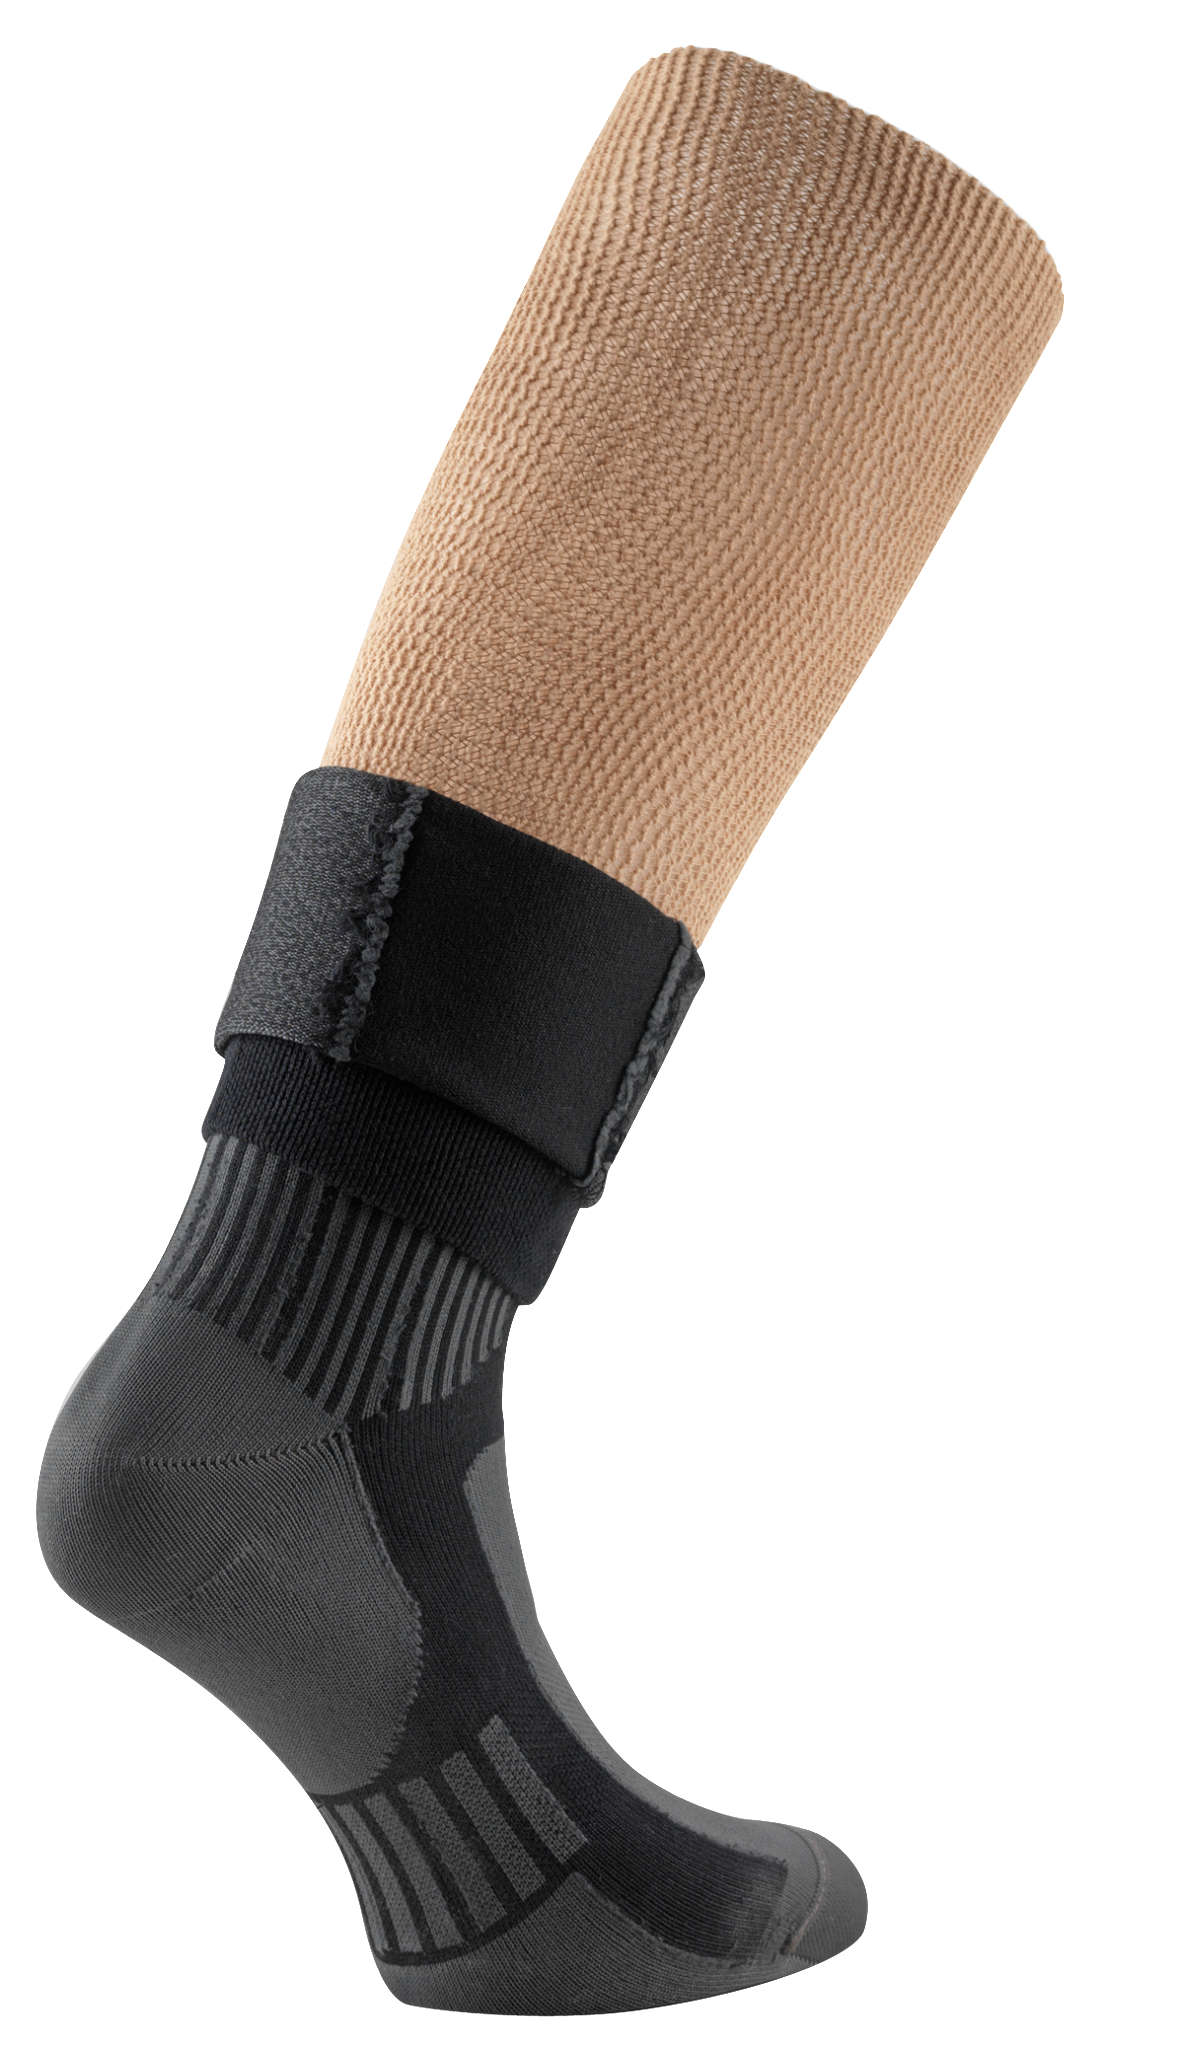 EquiFit Full Length GelBand